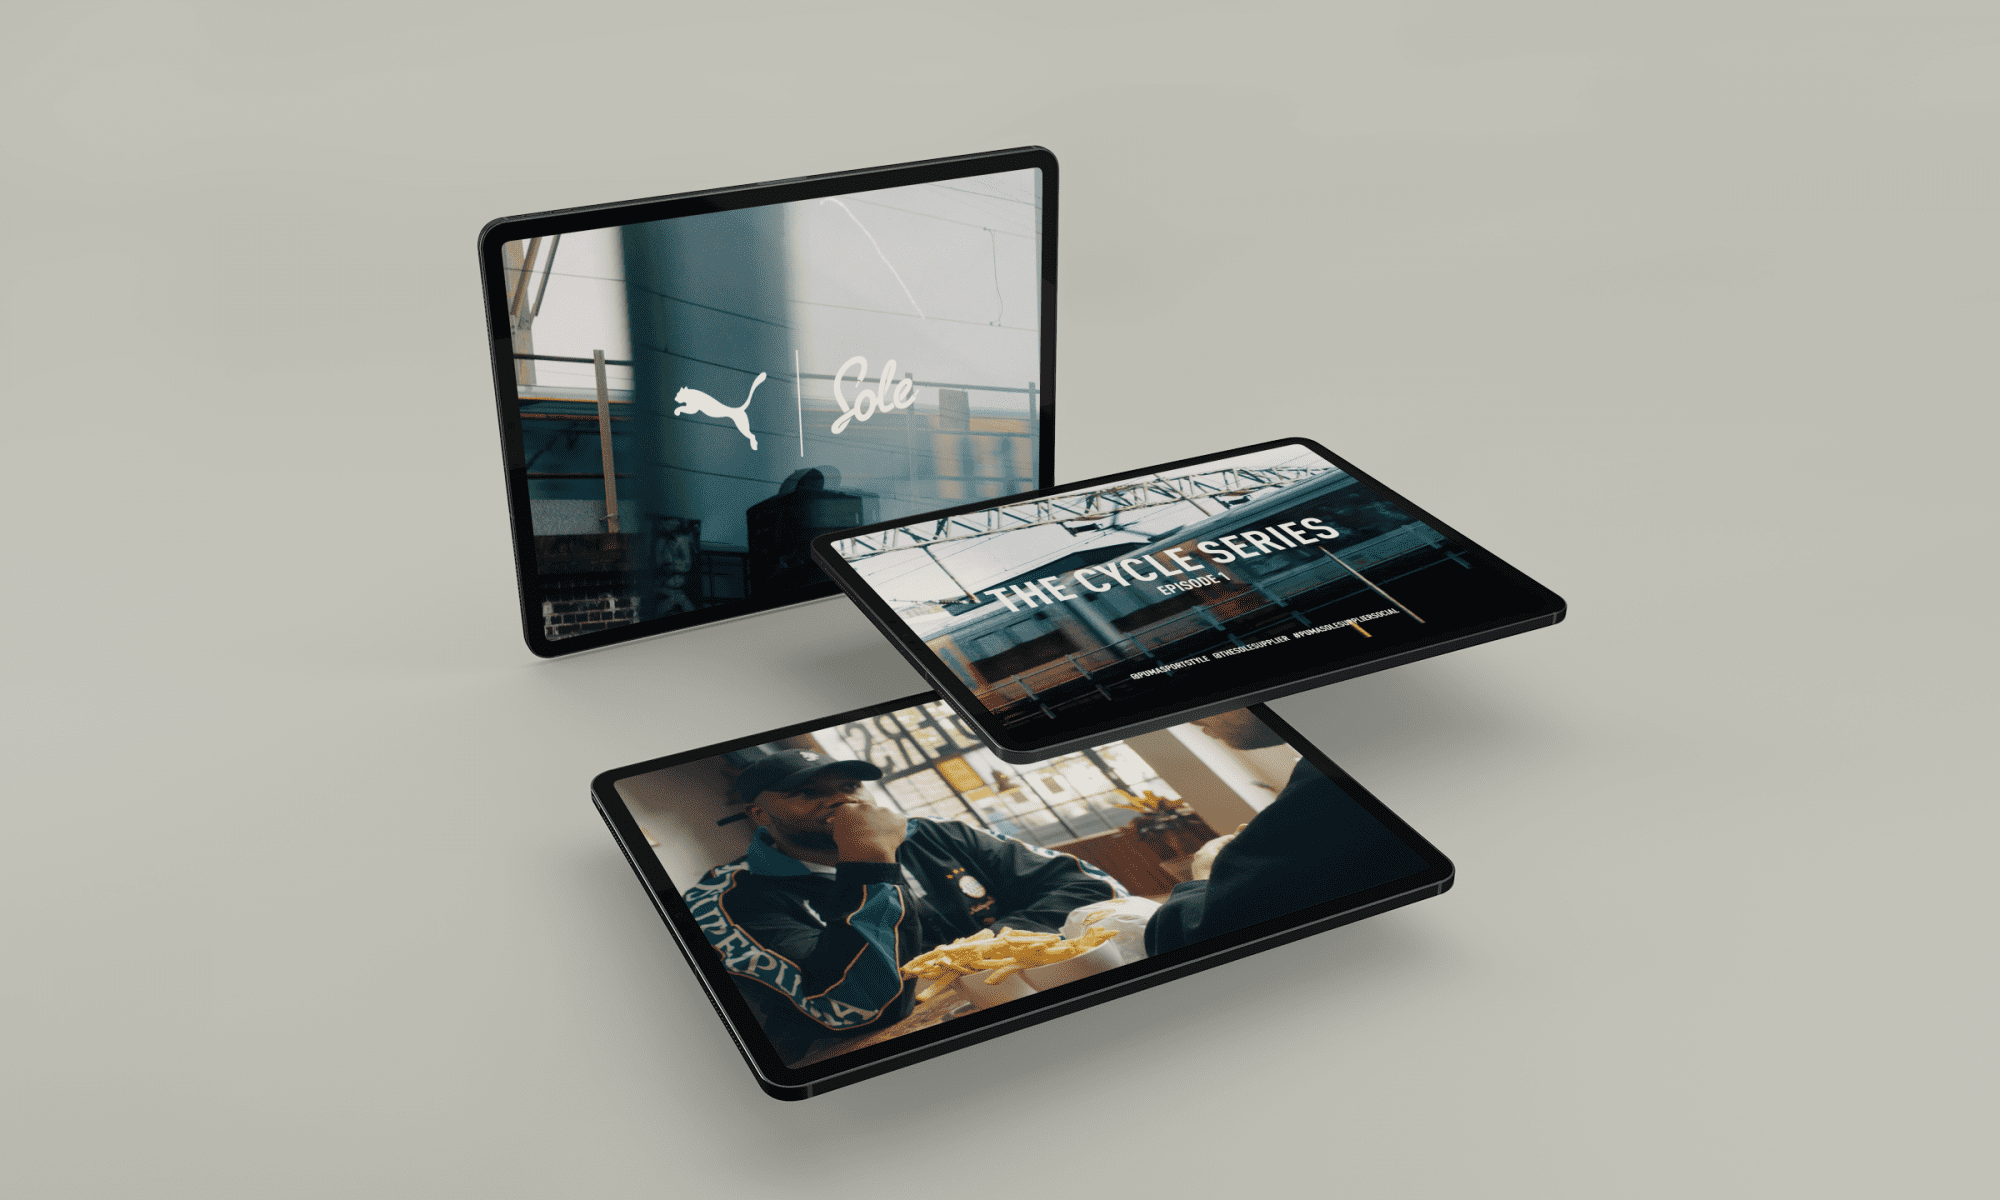 mockup-of-multiple-ipads-magically-floating-in-a-plain-backdrop